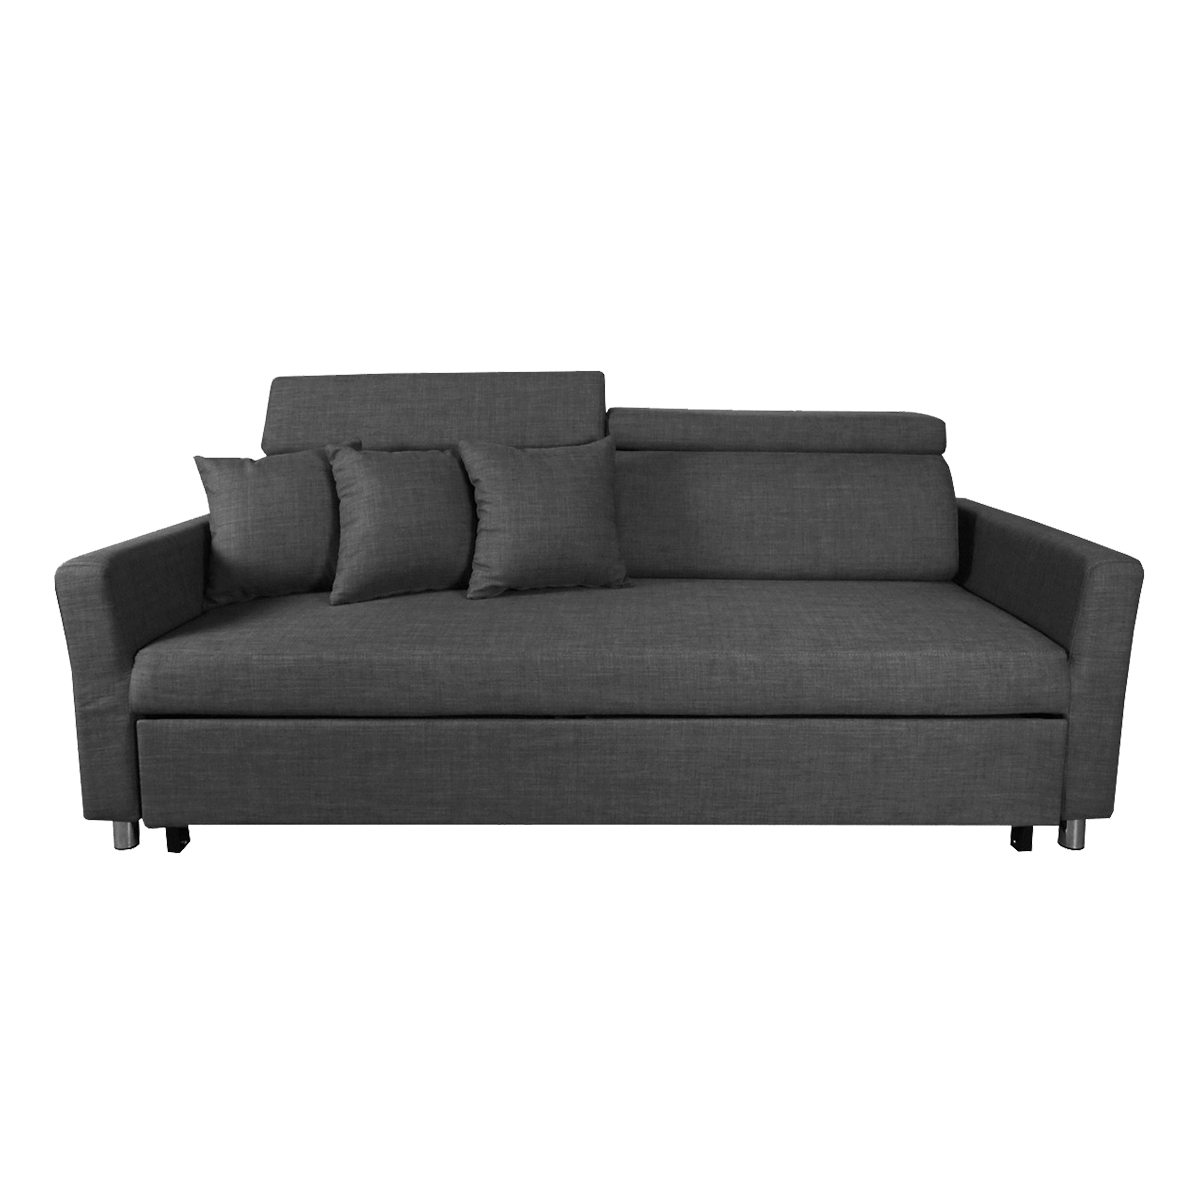 single size sofa bed singapore back of cabinet buy versatile beds online in hipvan bowen 3 seater grey image 1